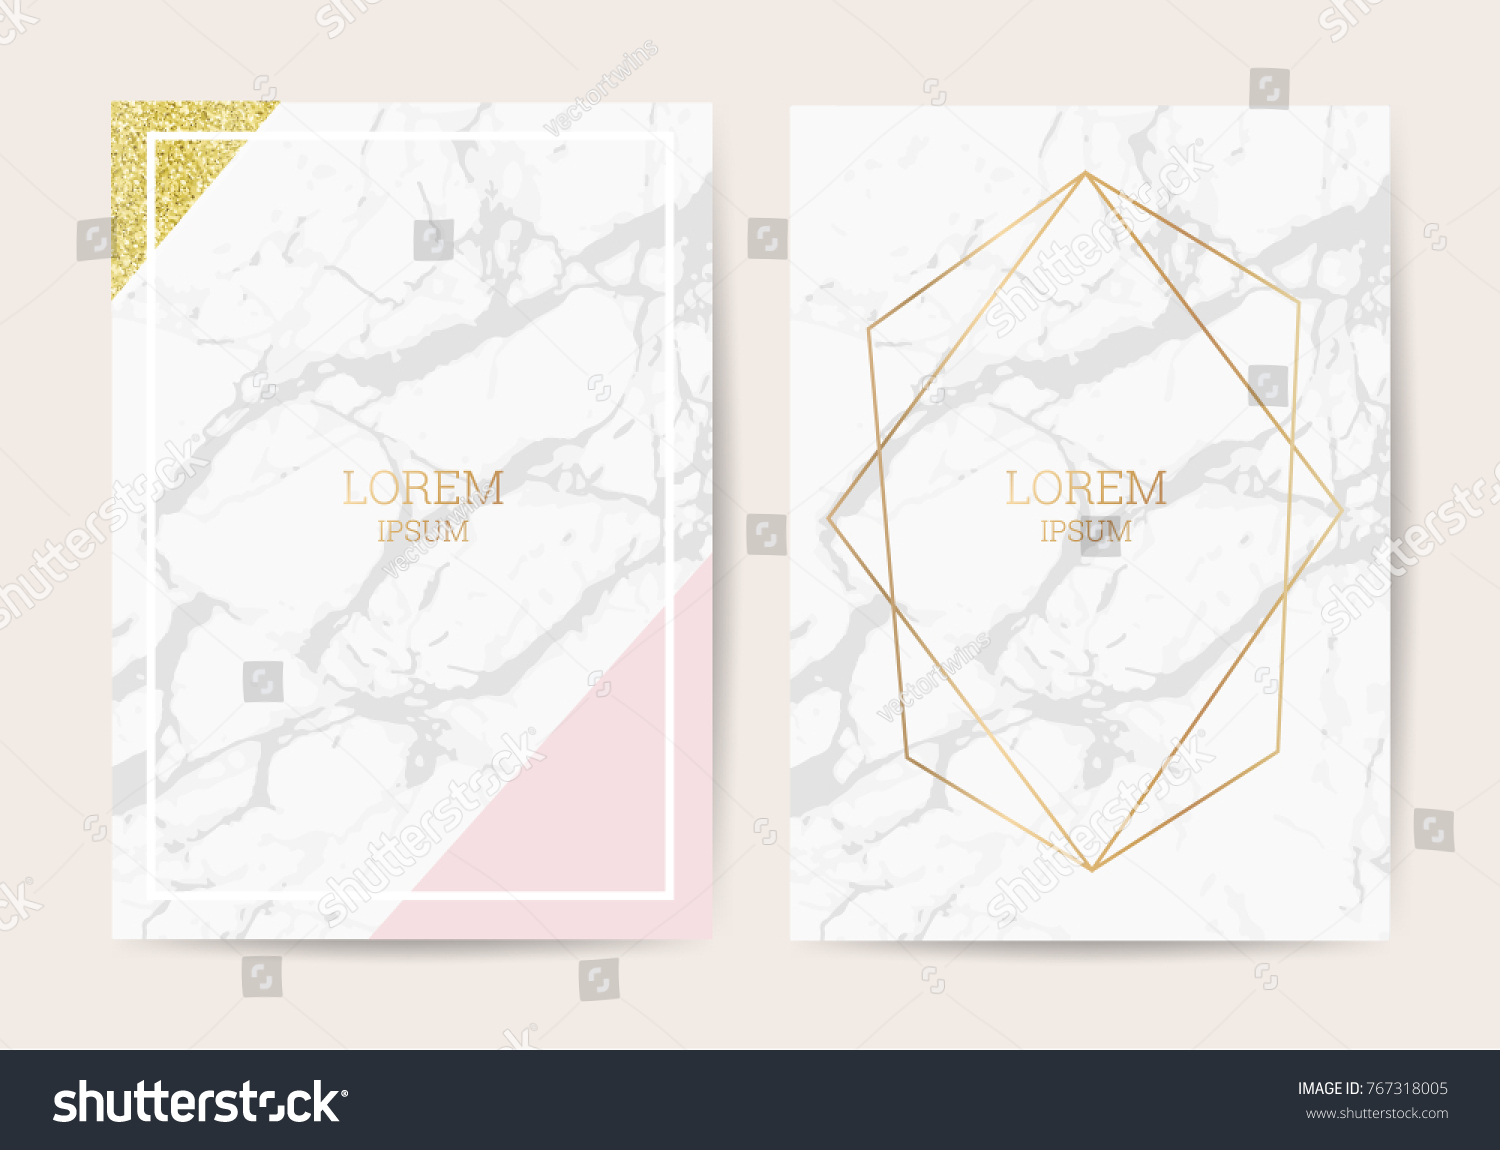 Luxury wedding invitation cards marble texture stock vector luxury wedding invitation cards with marble texture and golden geometric line vector illustration stopboris Images